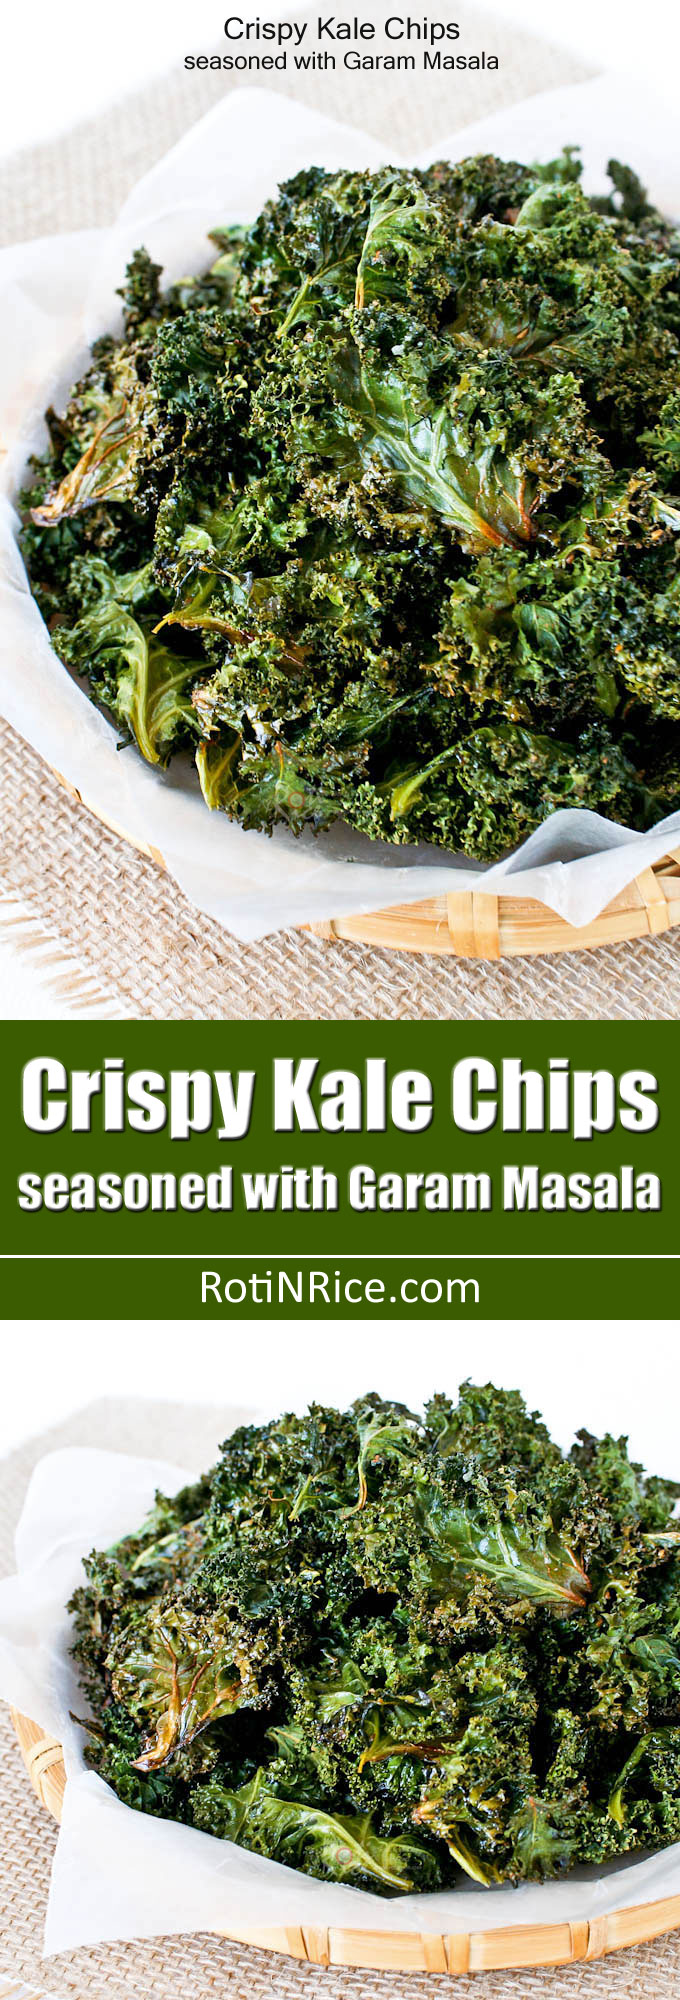 These baked Crispy Kale Chips Seasoned with Garam Masala are truly crispy and tasty. Only 4 ingredients. A must-try for sure! | RotiNRice.com